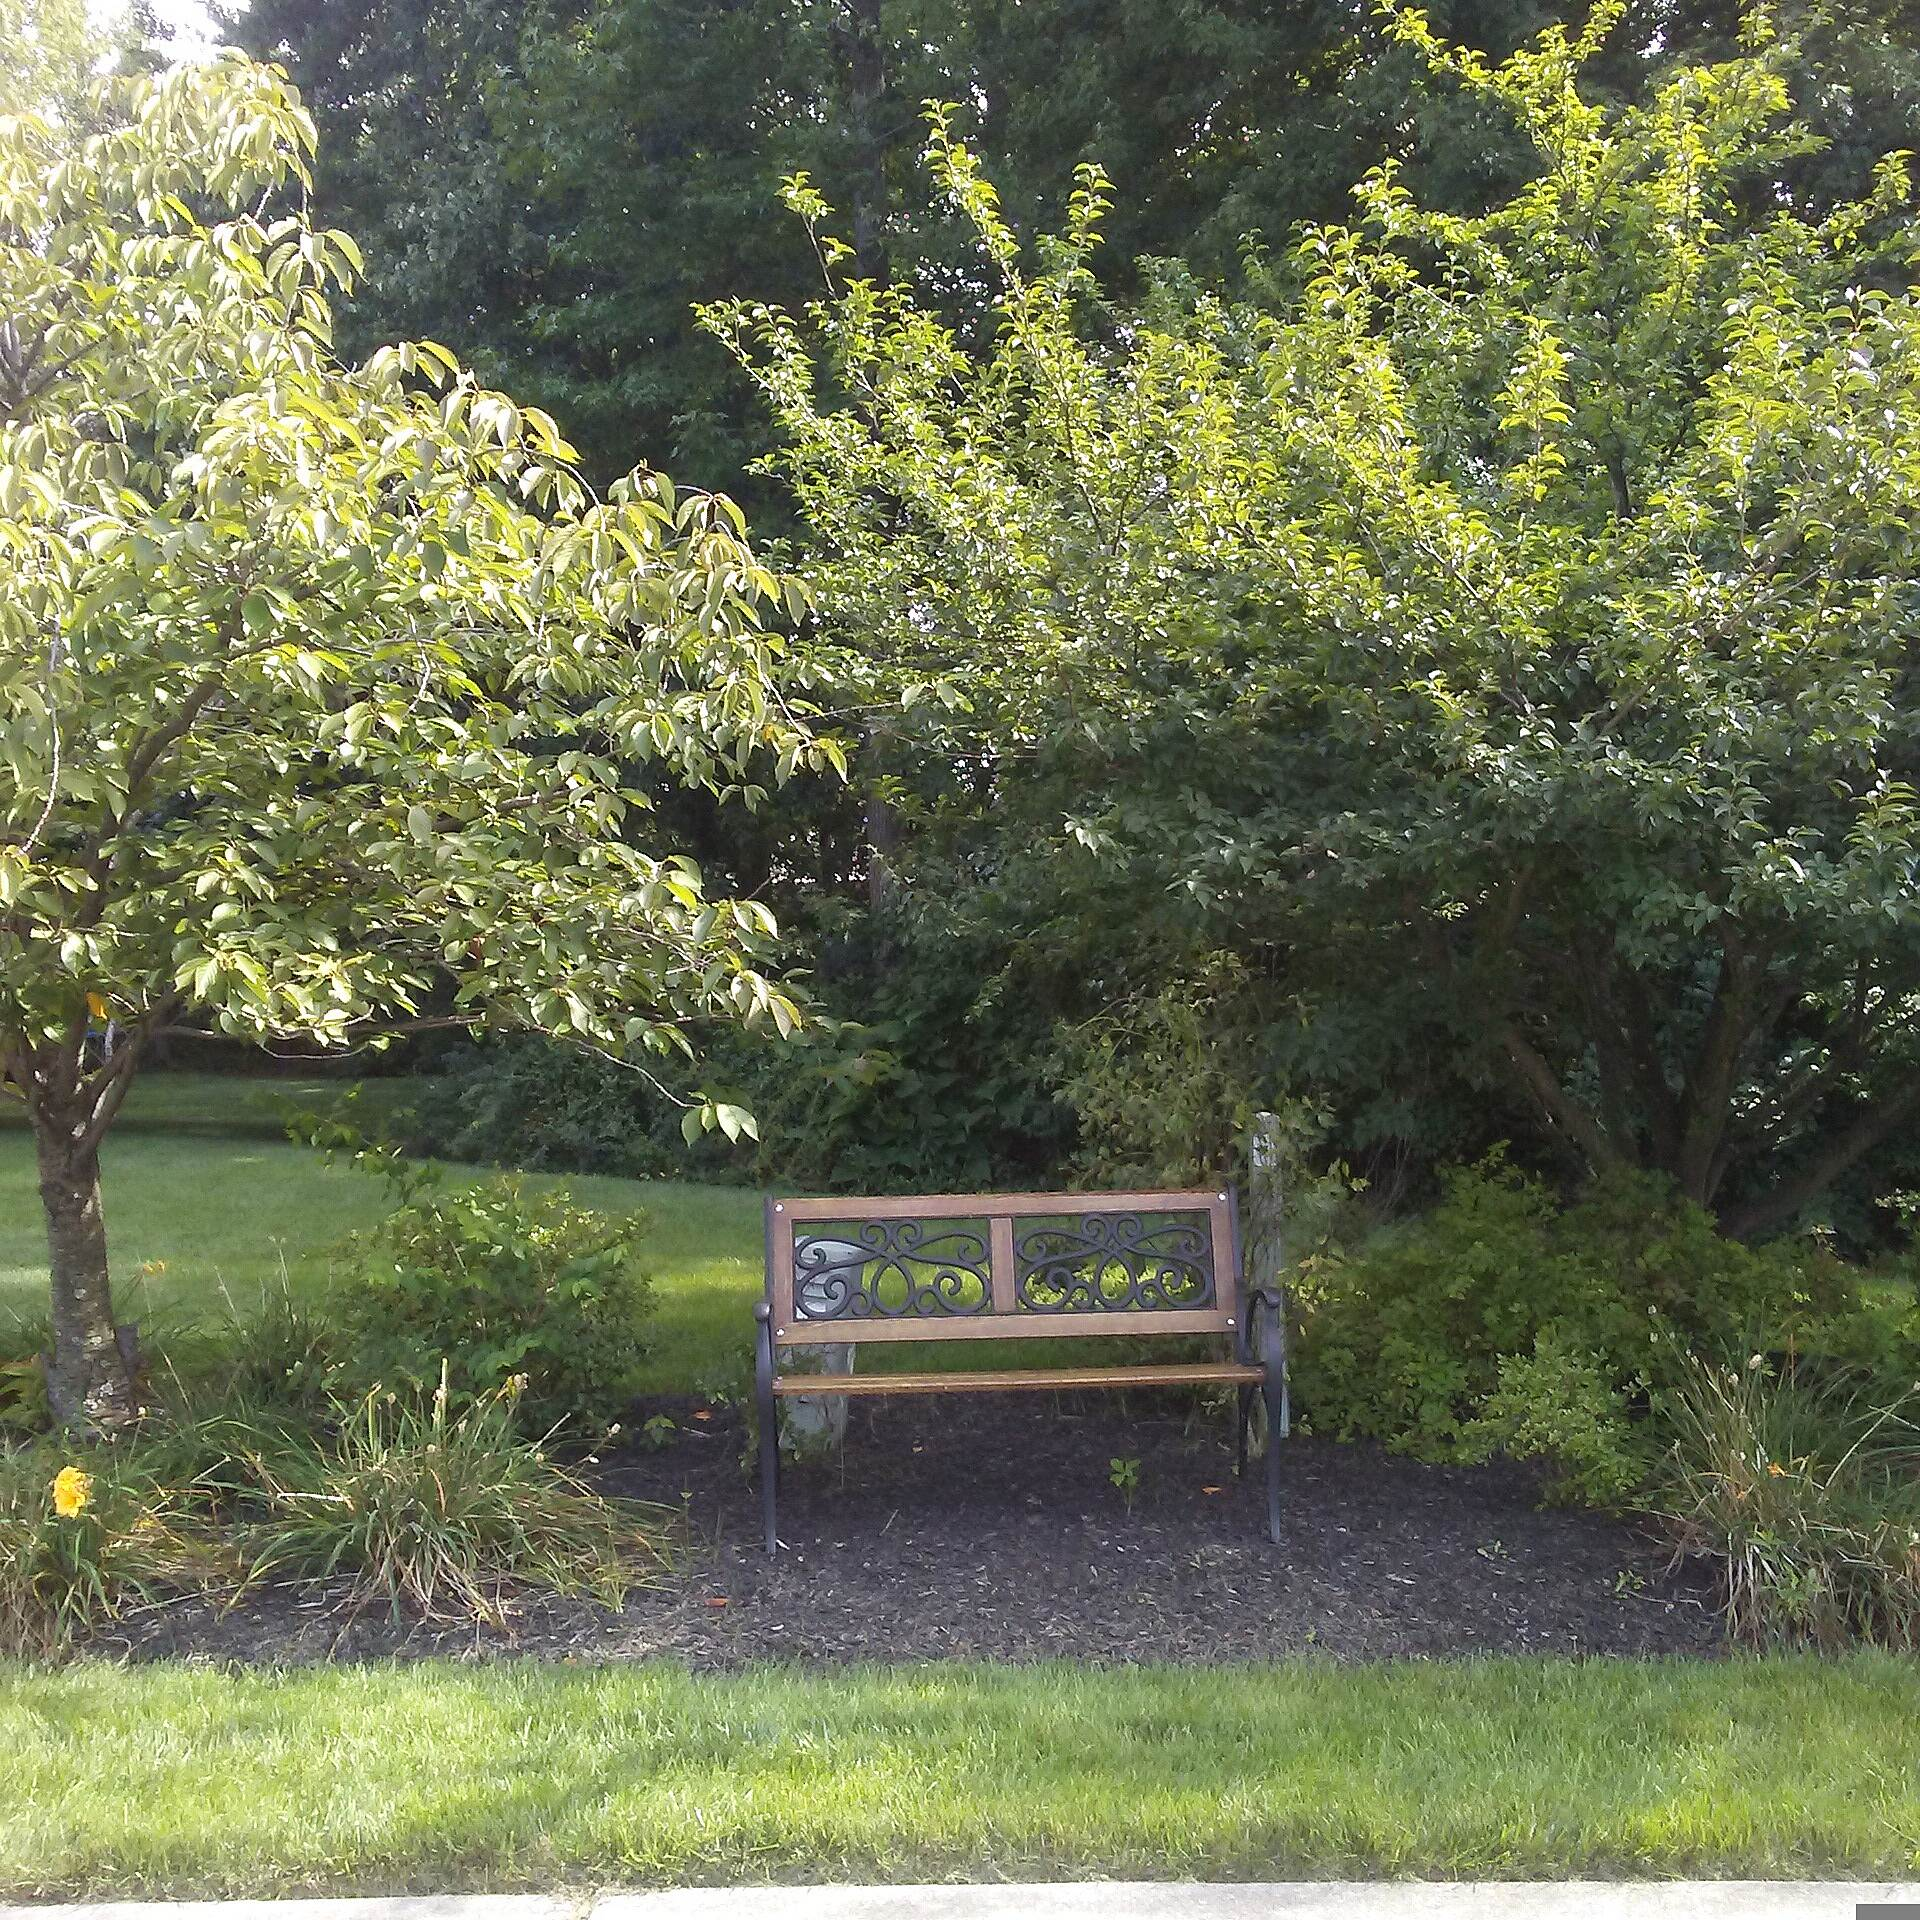 Northern Delaware Greenway Trail Northern Delaware Greenway The owners of a home along Weldin Ridge Drive capitalized on their proximity to the trail by installing this ornate bench, complete with trees and decorative landscaping.